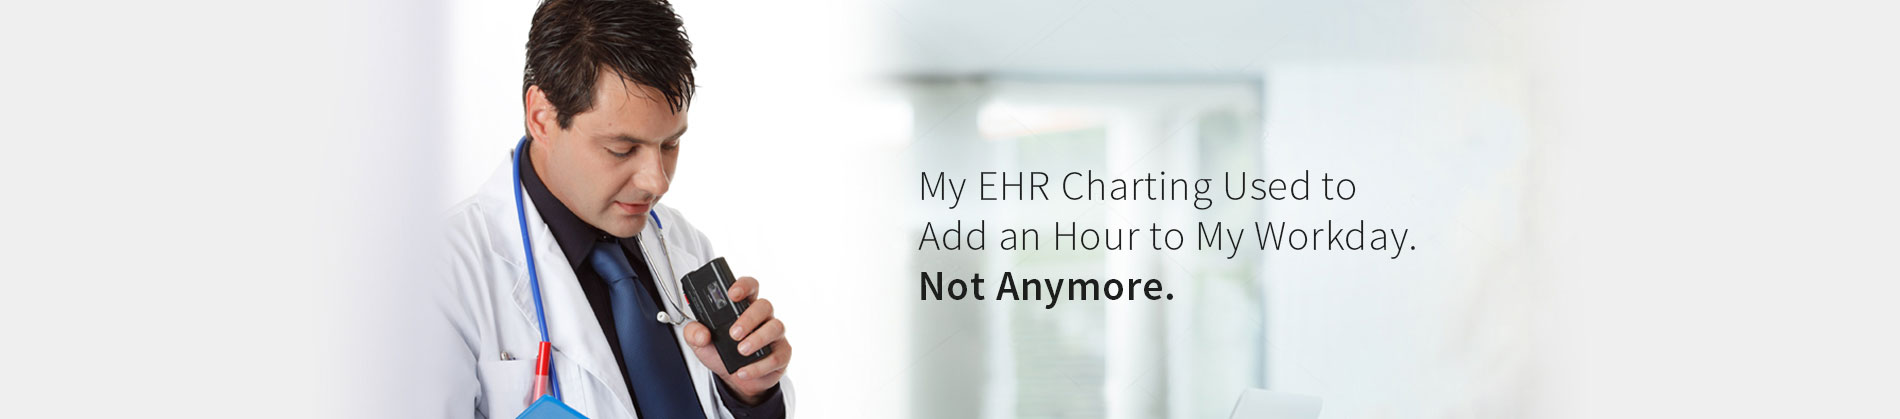 Improve EHR Usability, Simply Dictate!